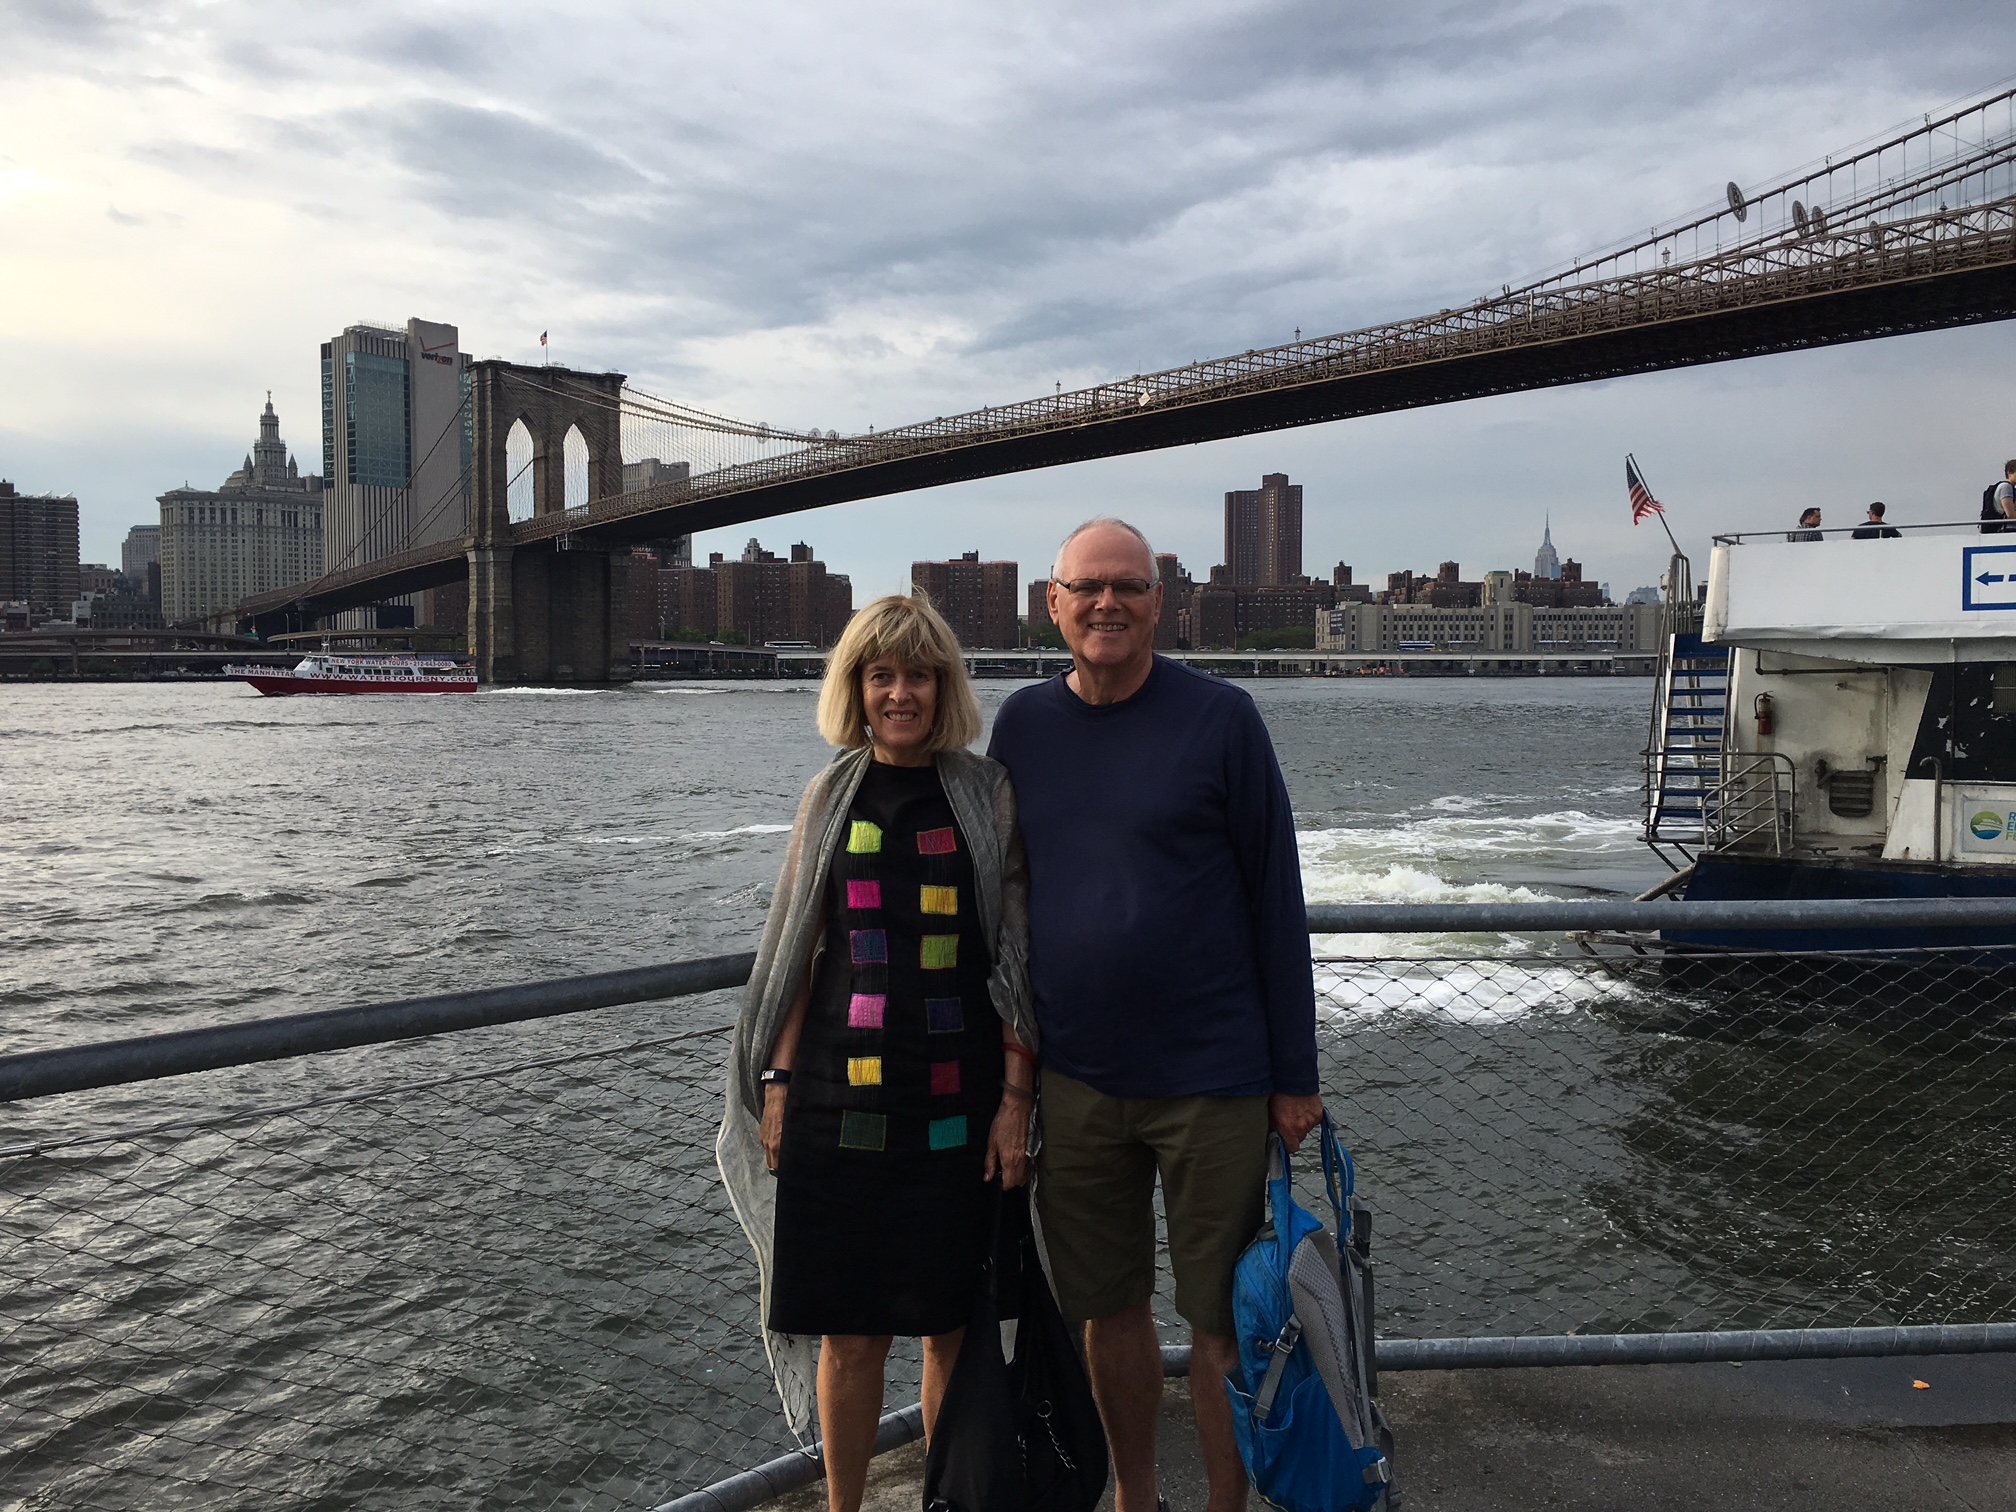 Nancy & Bernd in front of the Brooklyn Bridge